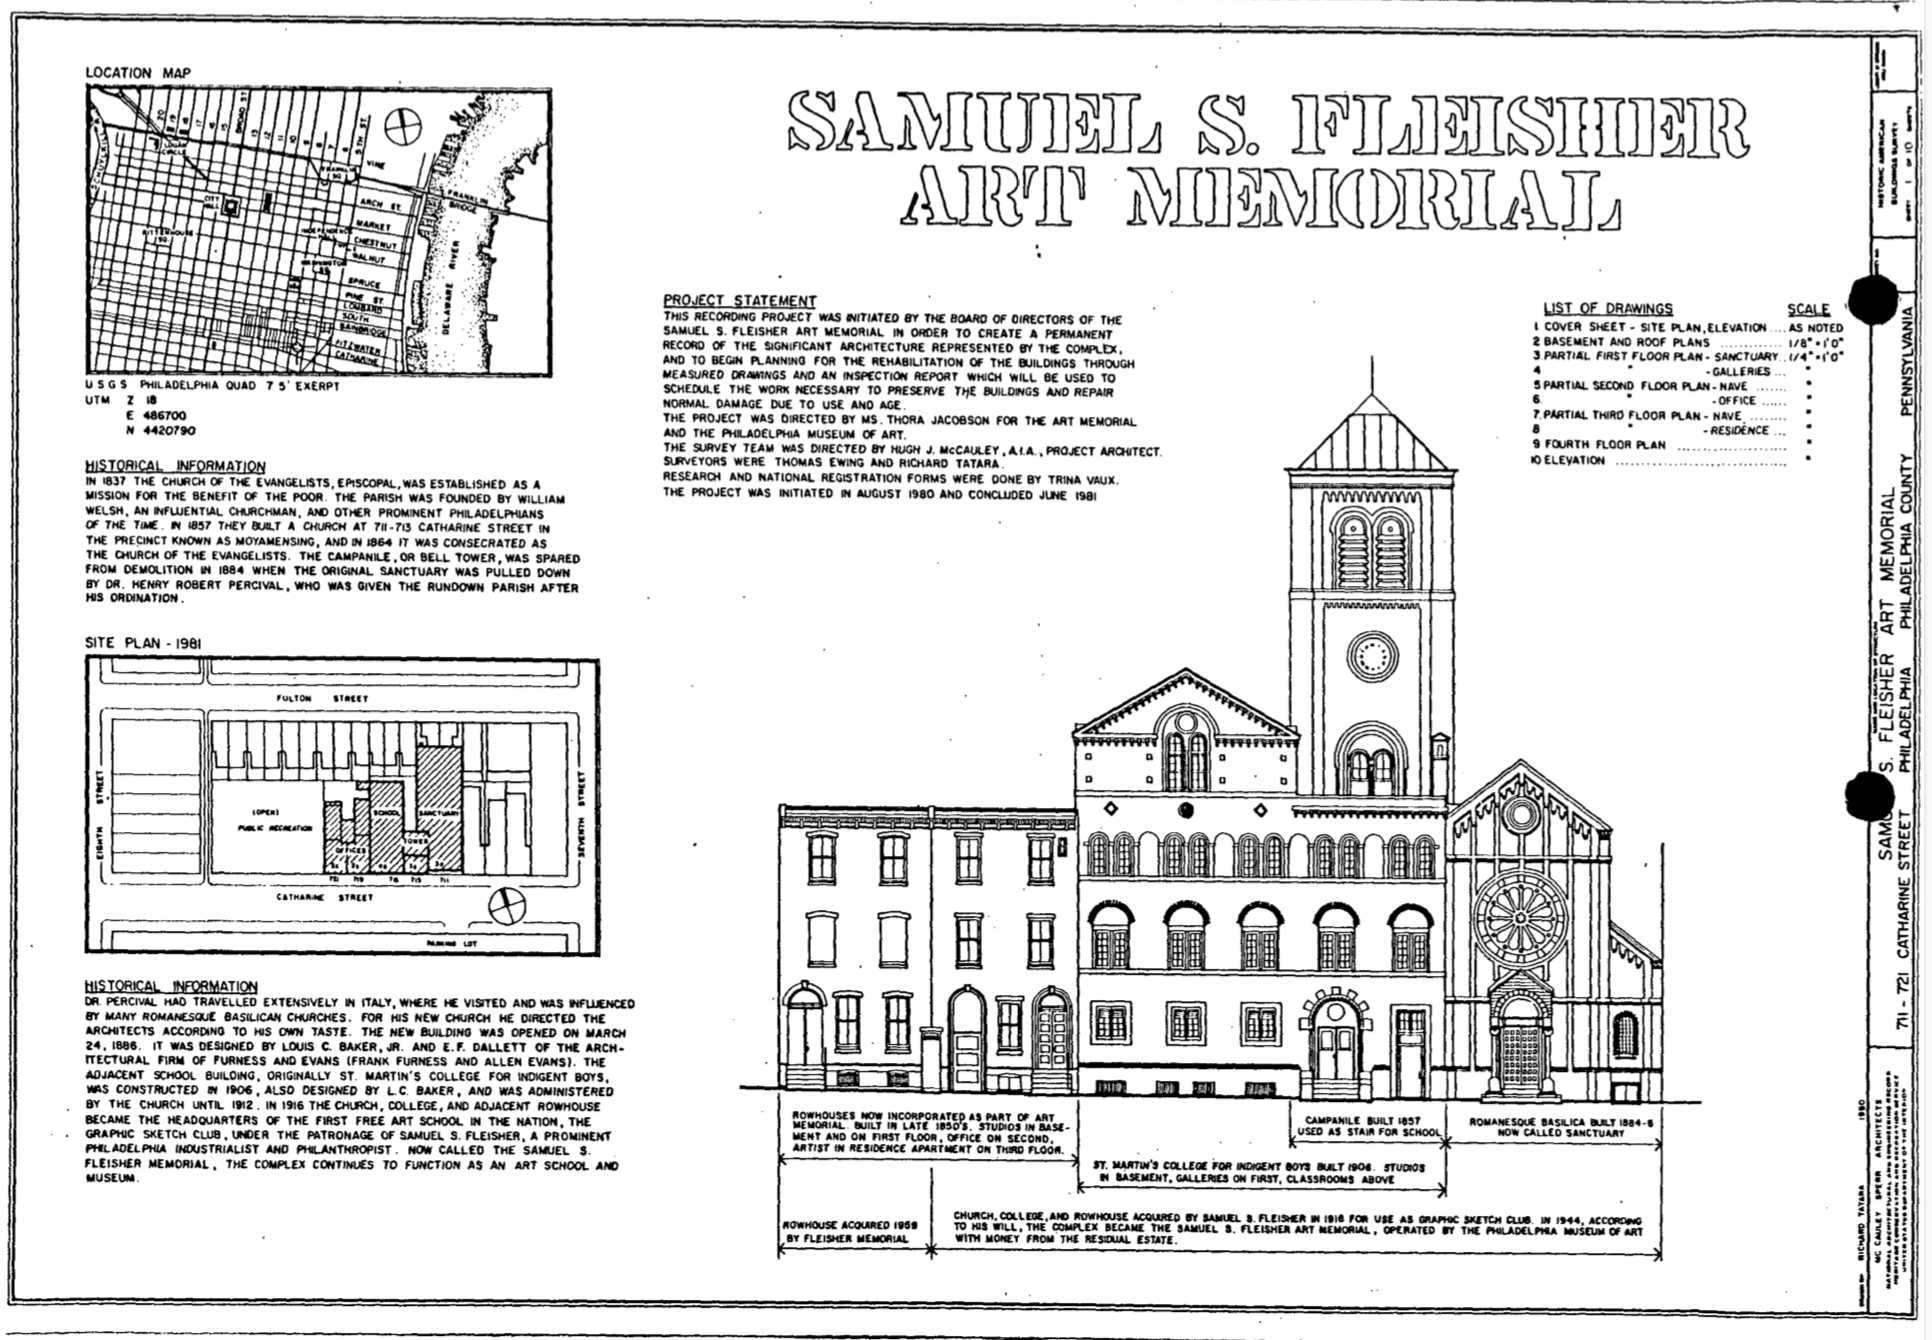 Sketch of the Museum documented in the NRHP Nomination Documents